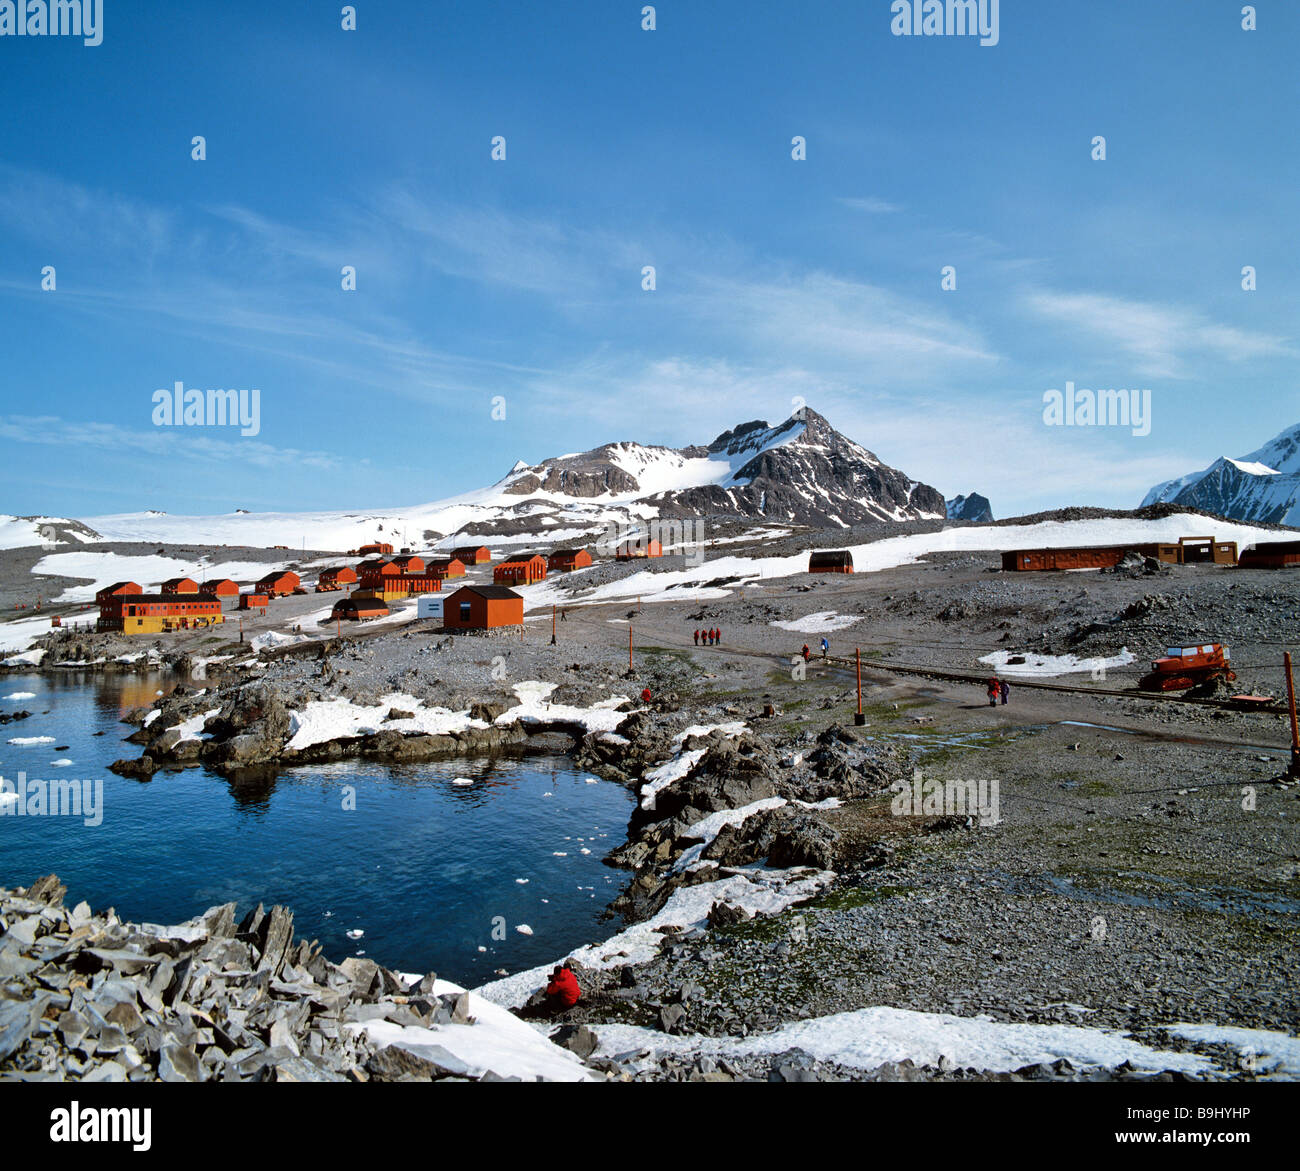 Weddell Sea, Hope Bay, small bay on the north end of the Antarctic peninsula, Argentinian research centre Esperanza, - Stock Image